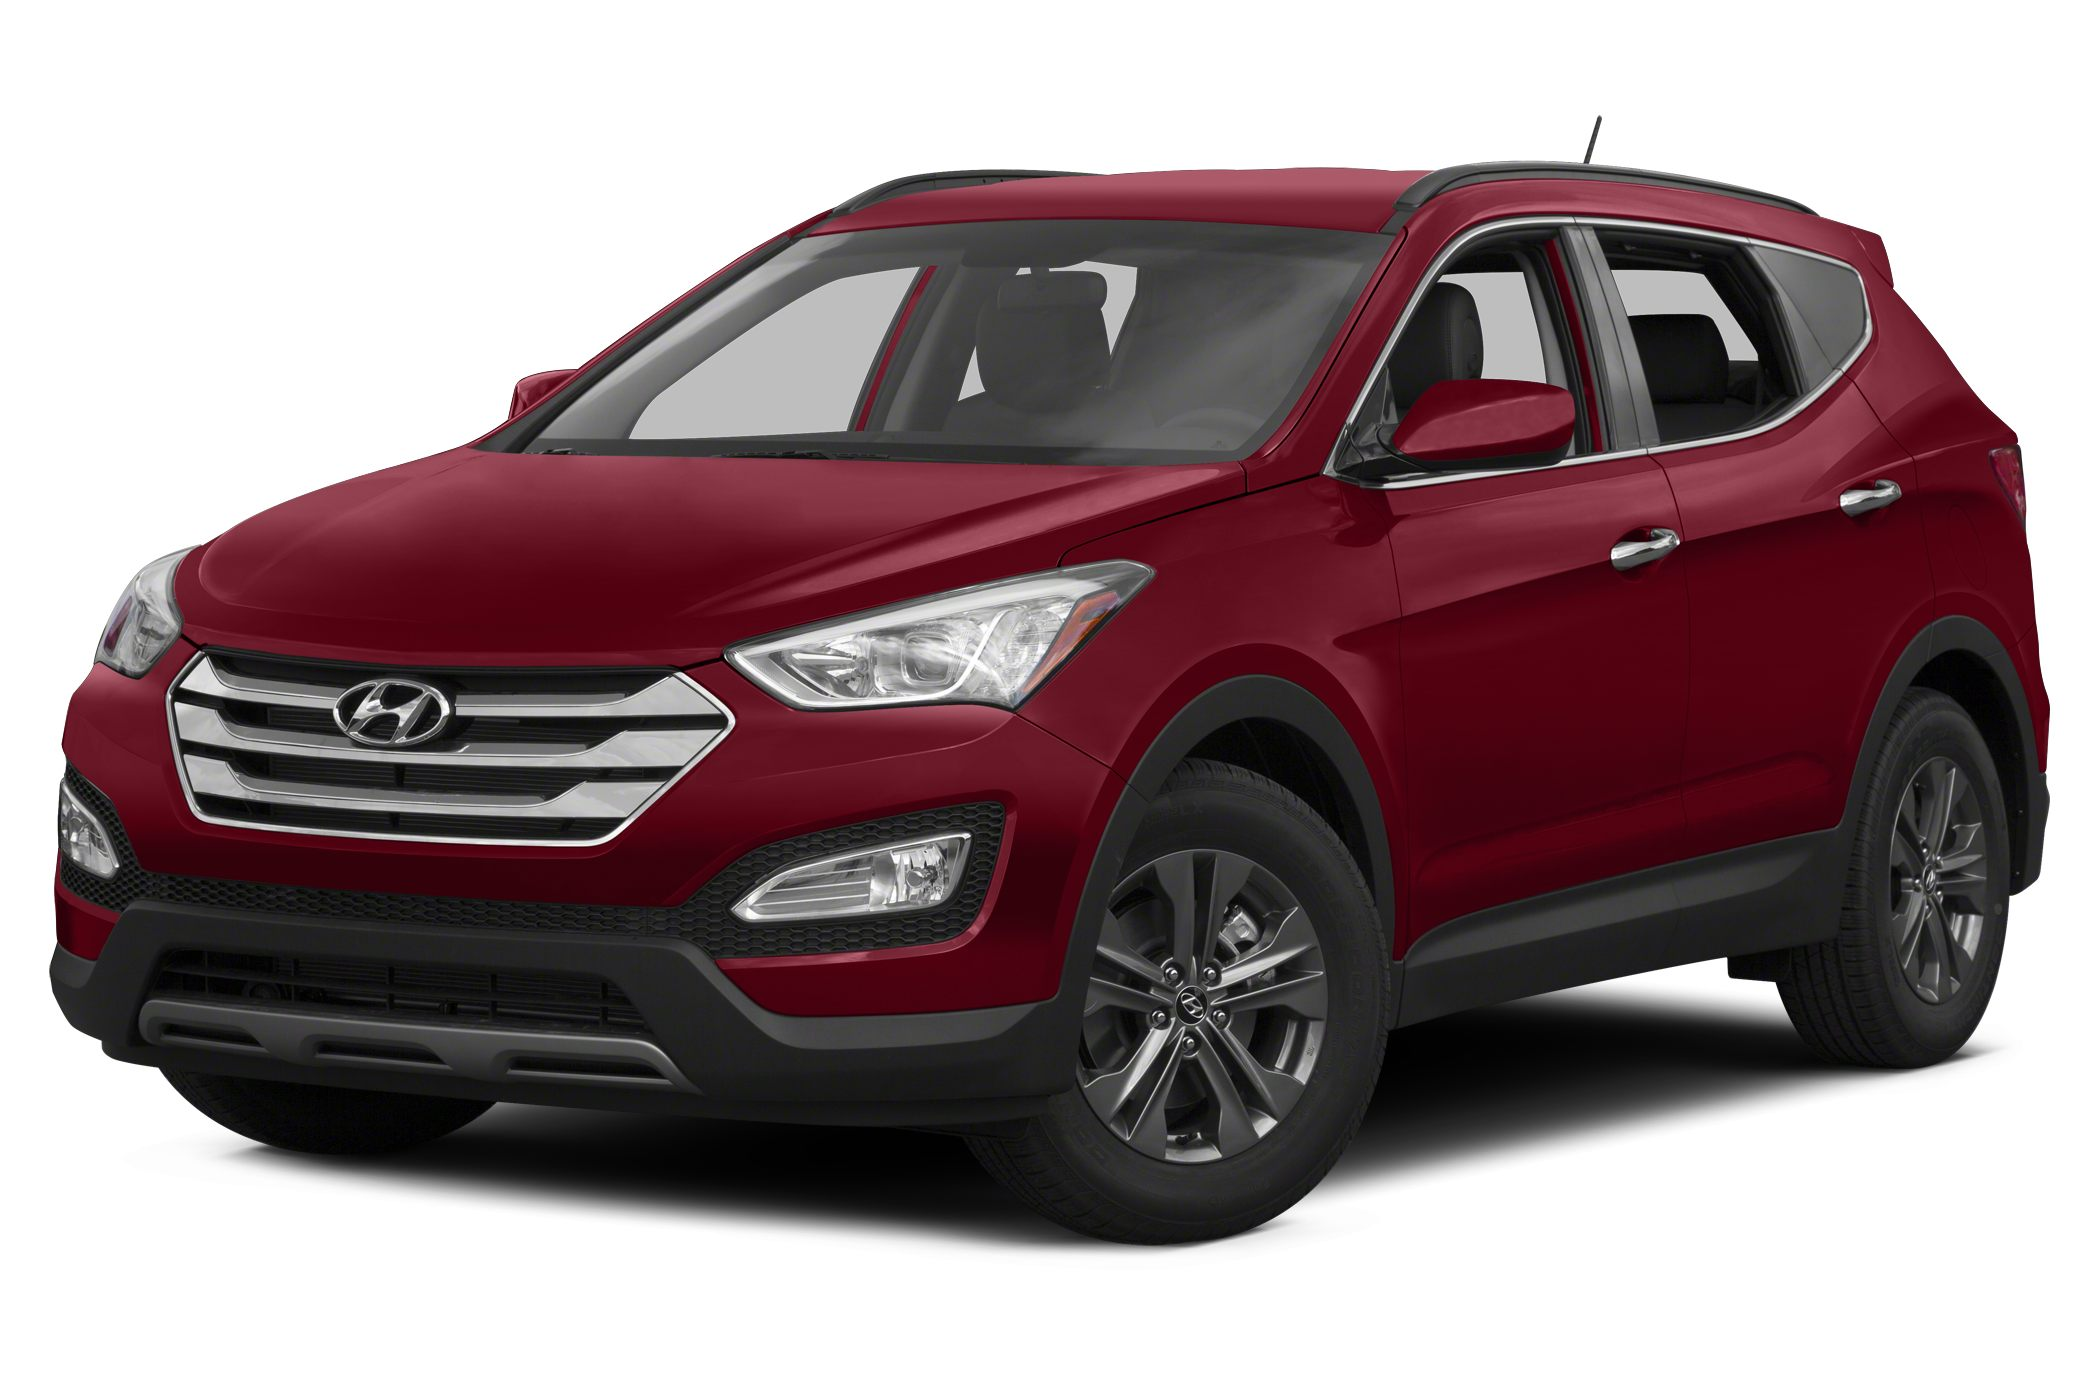 Hyundai Santa Fe 2.4 2014 photo - 9